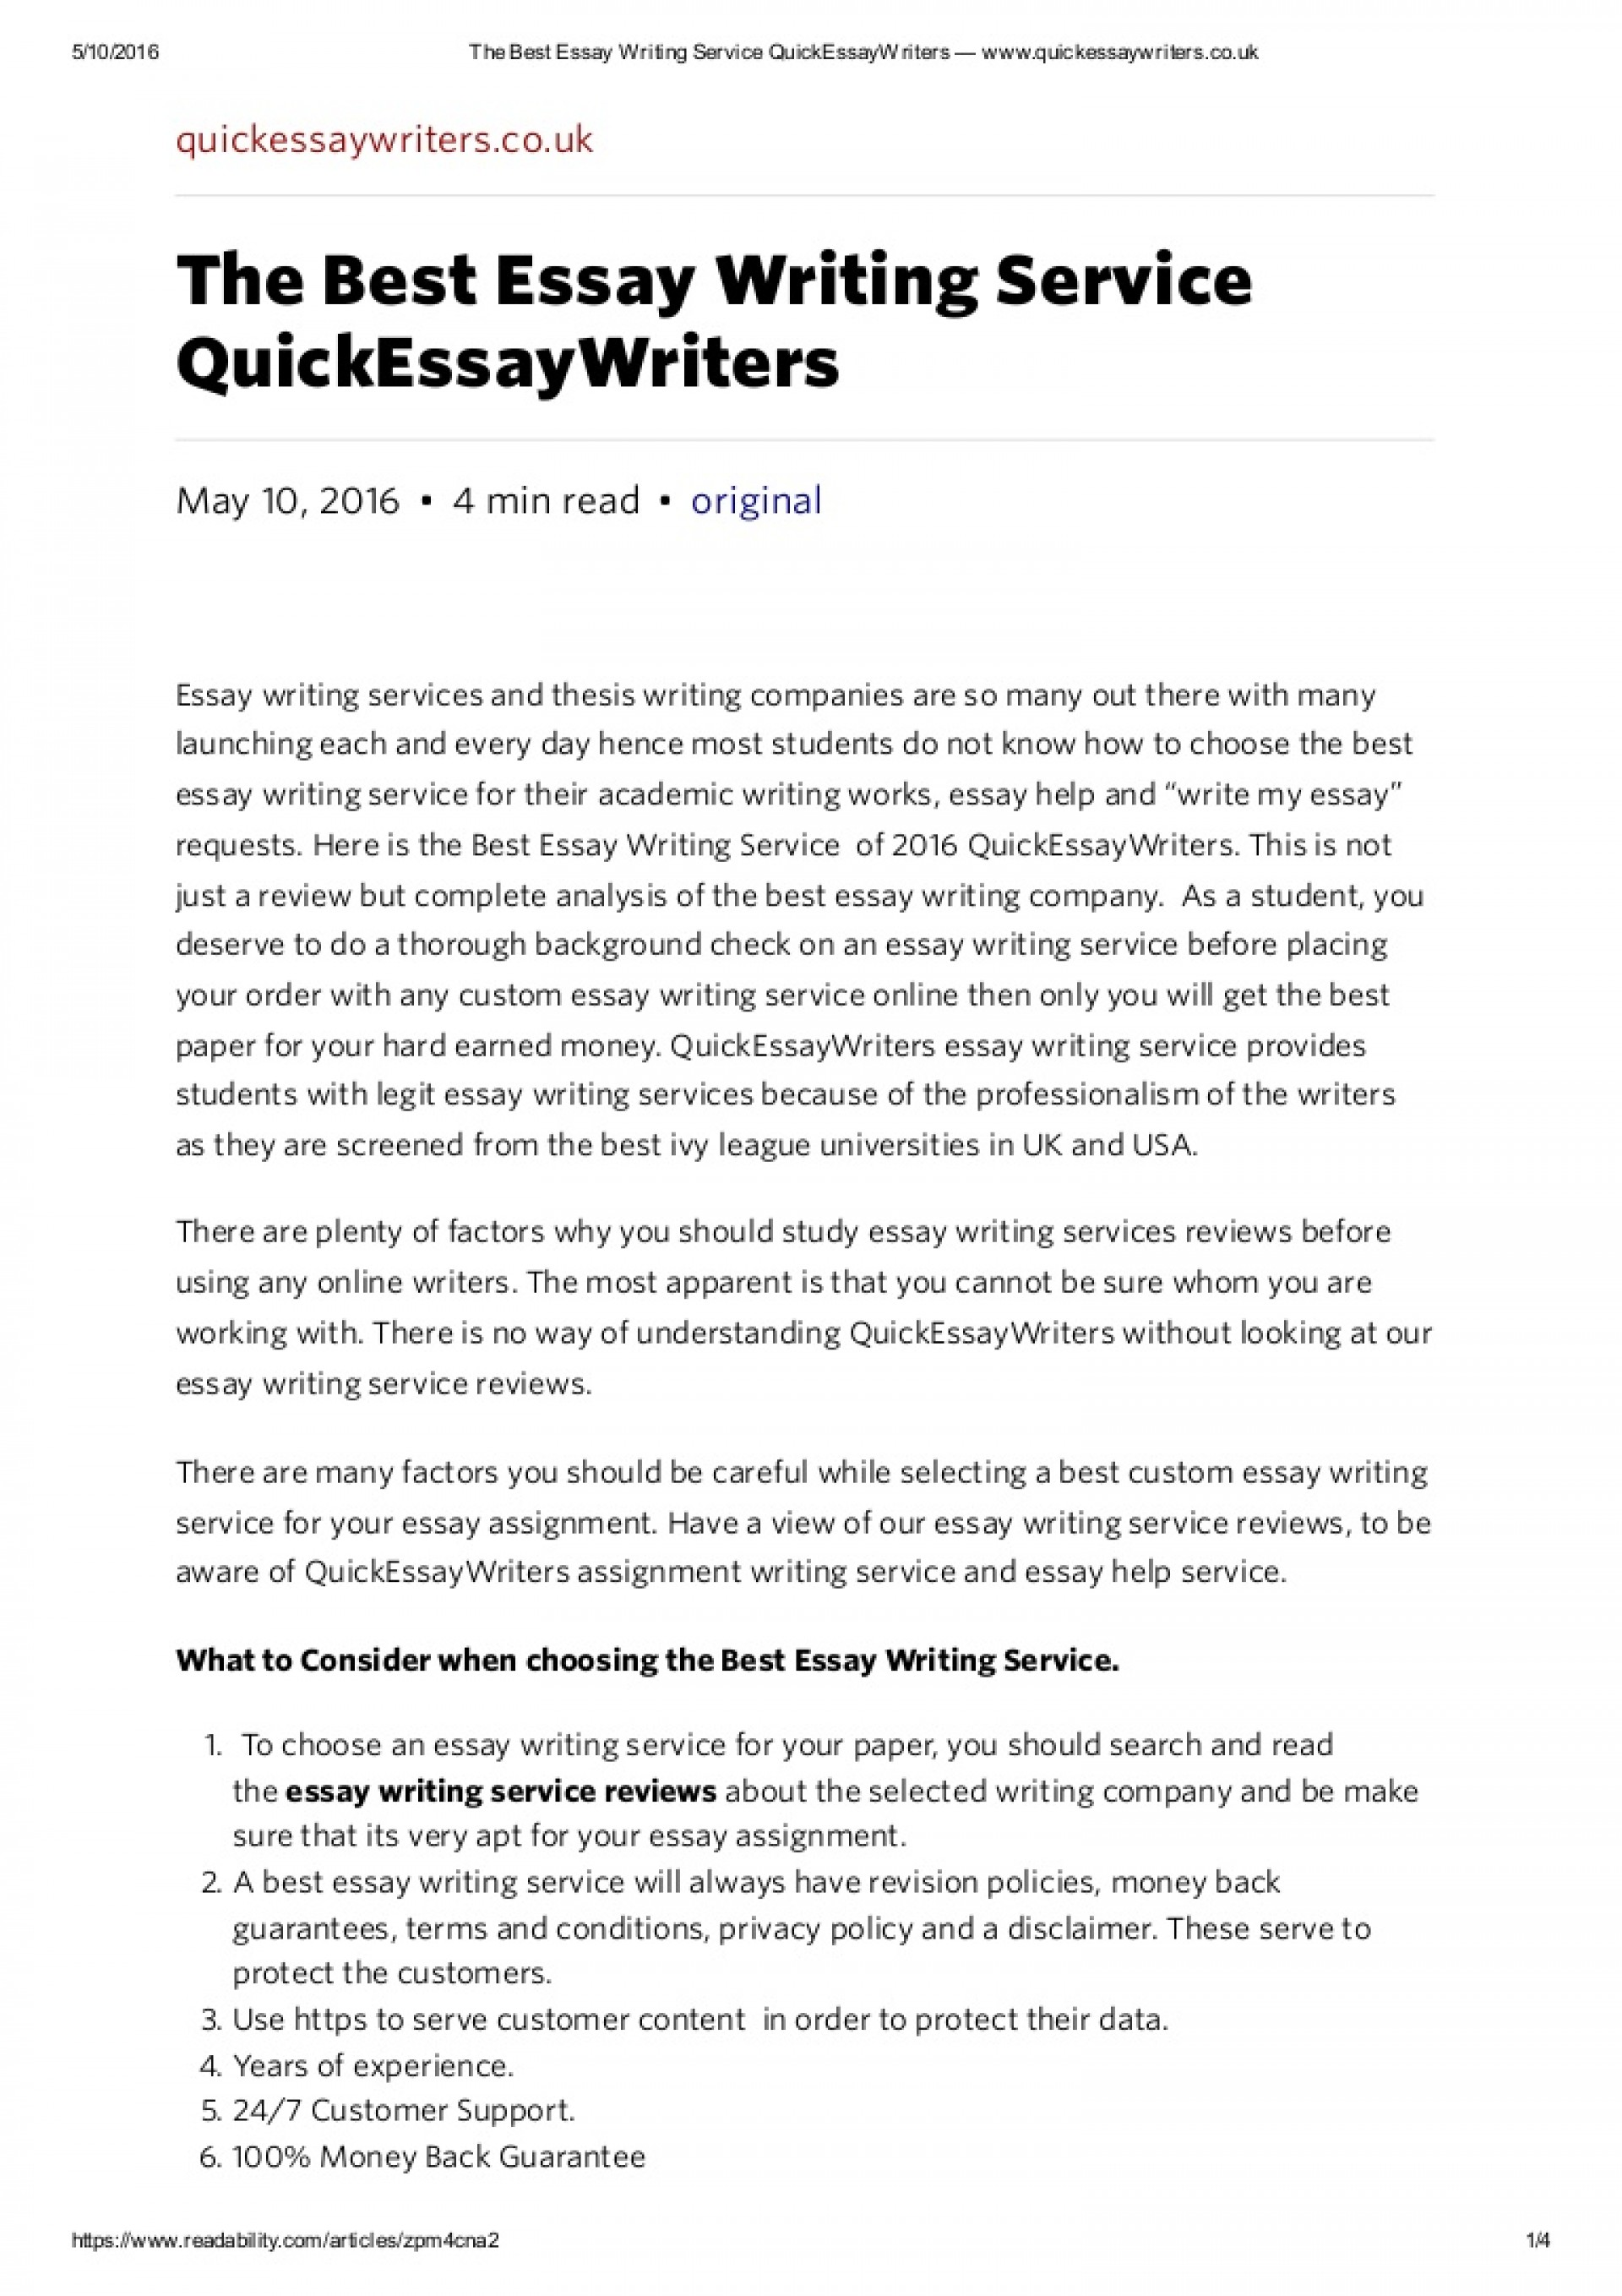 027 Best Essay Help Review Thebestessaywritingservicequickessaywriterswww Thumbnail Impressive Writing Services Uk Reviews Service 1920